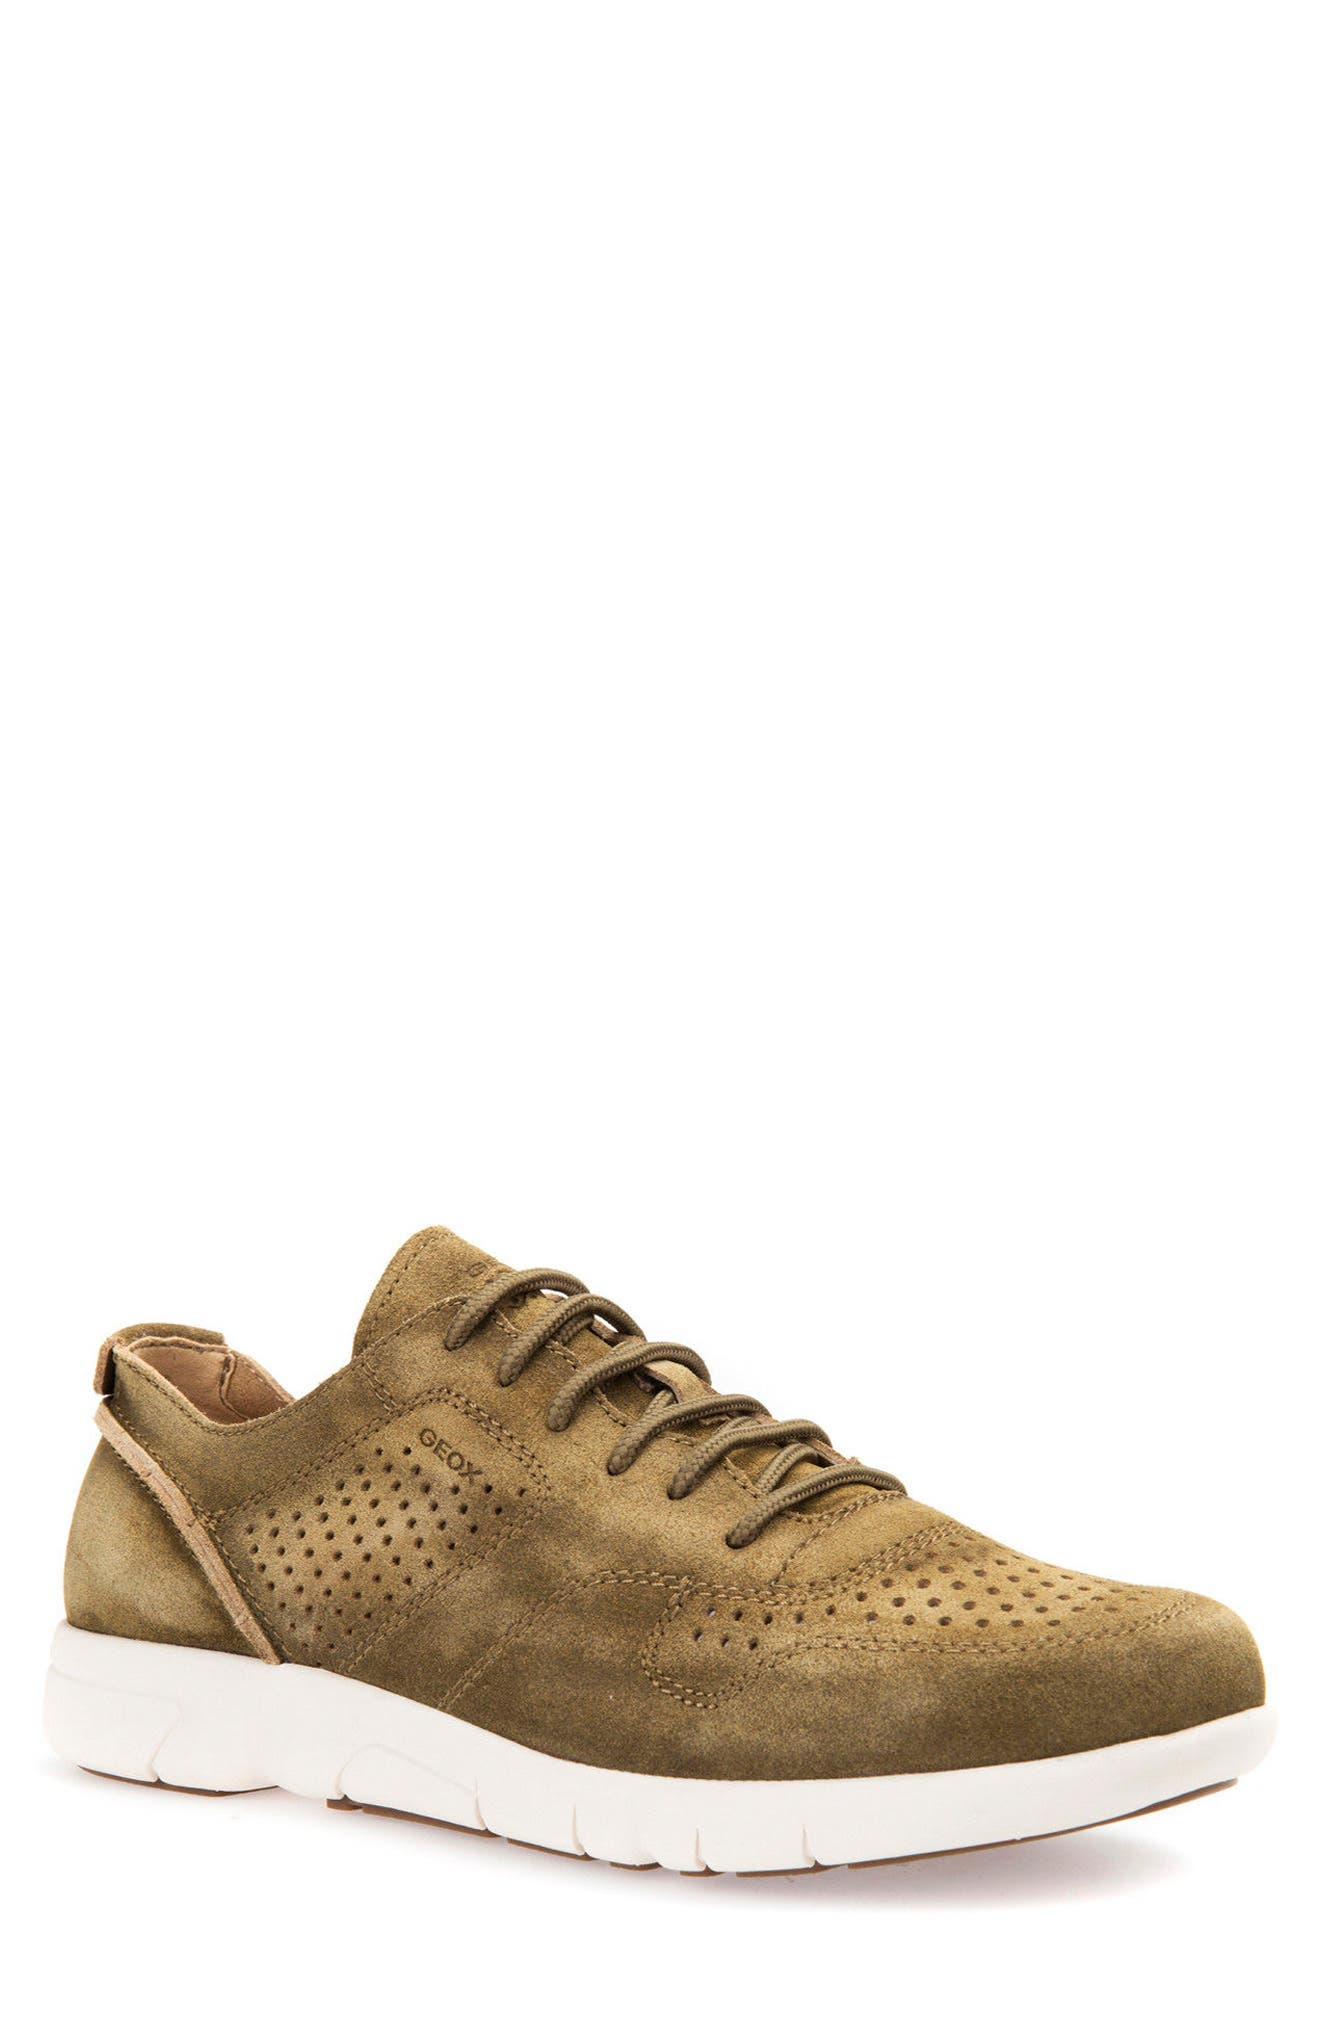 Brattley 2 Perforated Sneaker,                         Main,                         color, Musk Suede